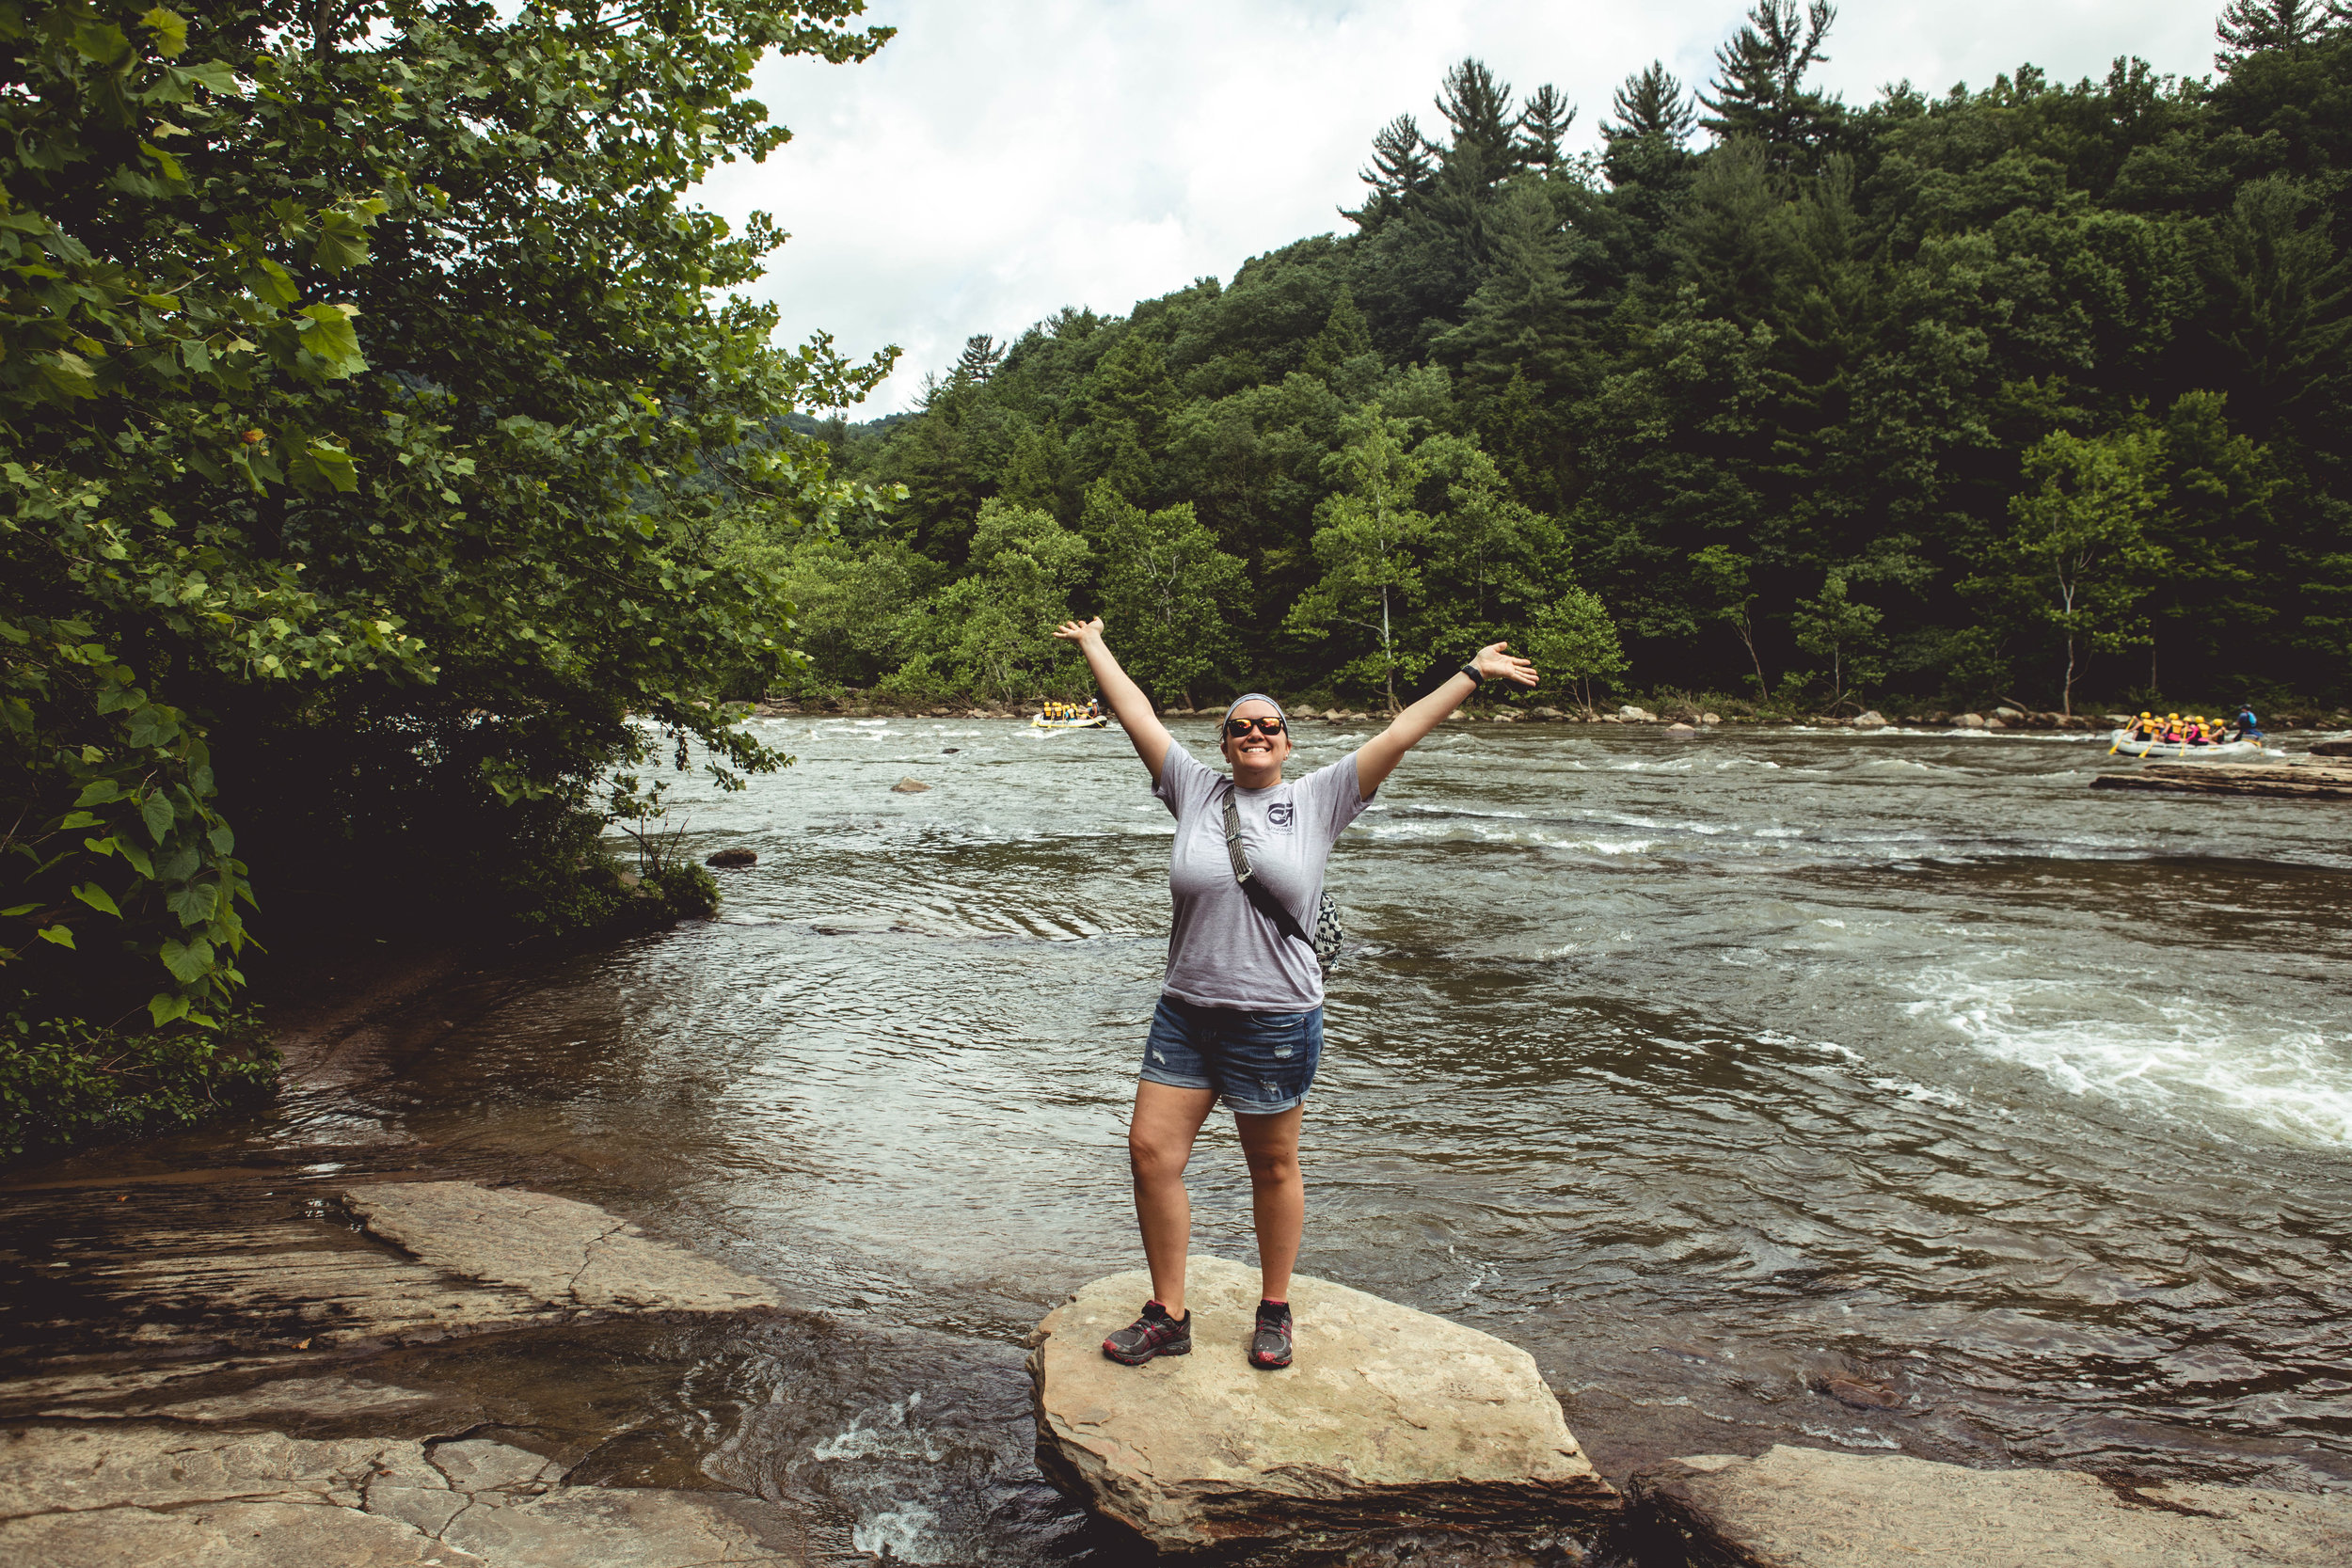 My girlfriend, Katie, on the Youghiogheny.